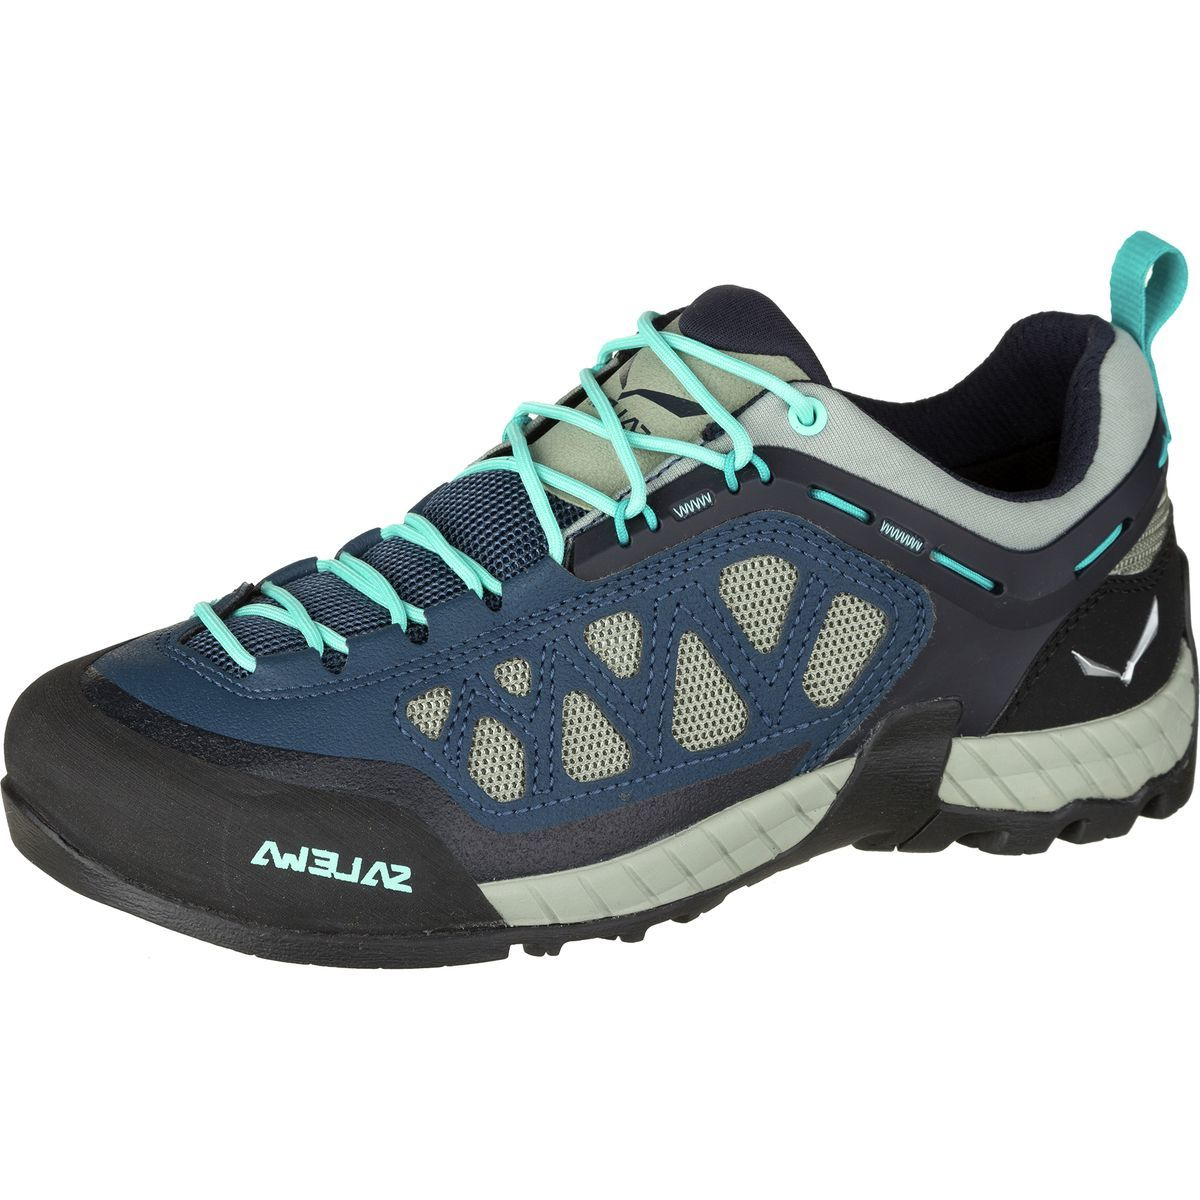 Salewa Firetail 3 Approach Shoe - Women's